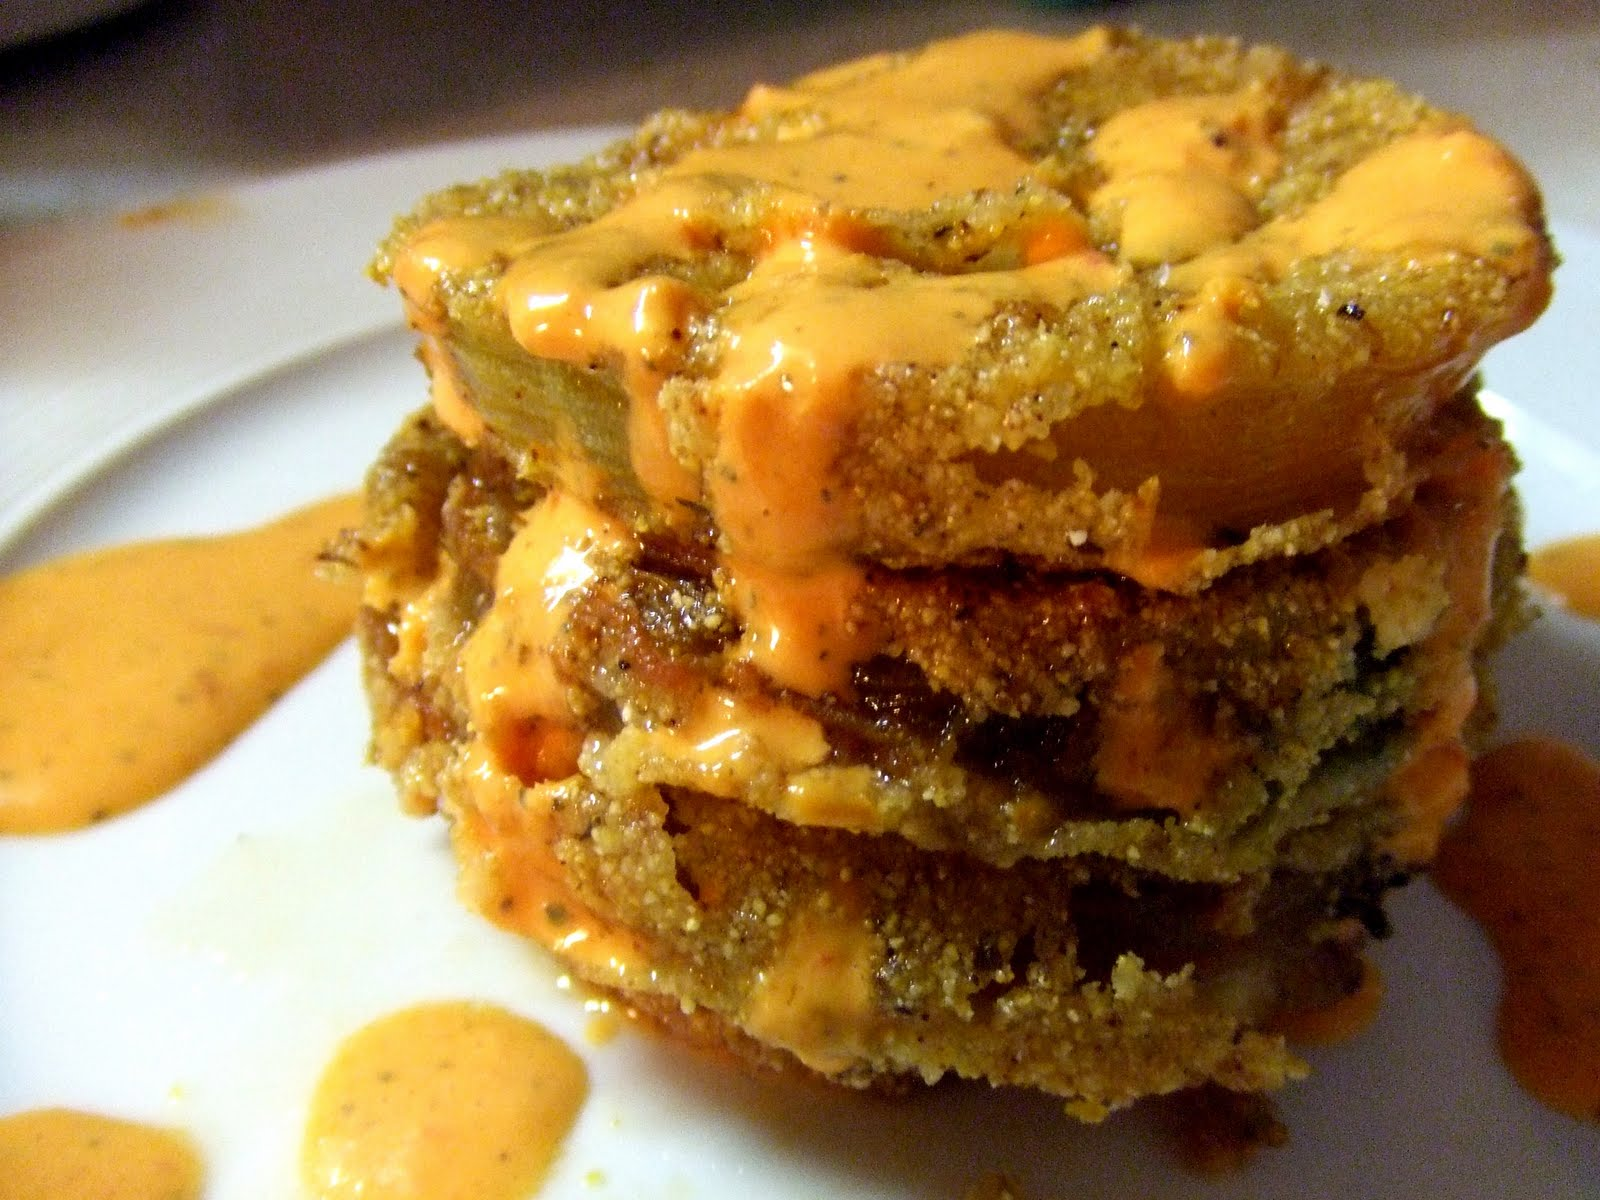 fried green tomatoes character analysis essay Essay on older adult: the notebook and fried green tomatoes film analysis - older adult: film analysis the notebook the beginning of the notebook opens with the gentleman, noah in a nursing home facility.